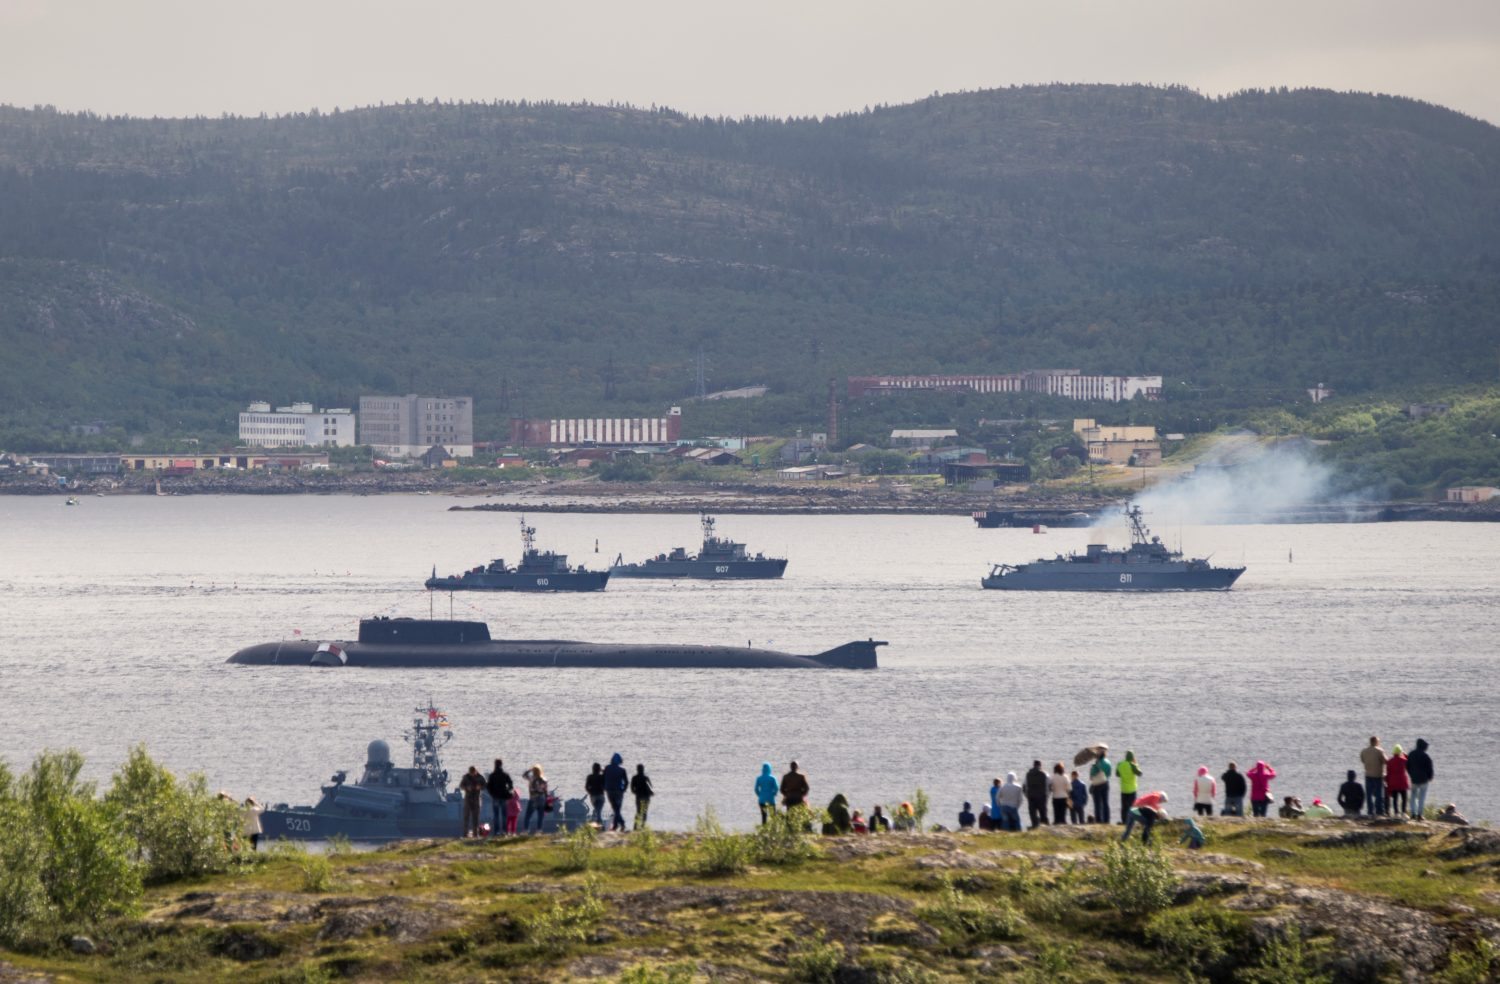 Russian navy ships and a submarine take part in a naval parade at the port of Severomorsk, Russia July 31, 2016. Picture taken July 31, 2016. REUTERS/Stringer